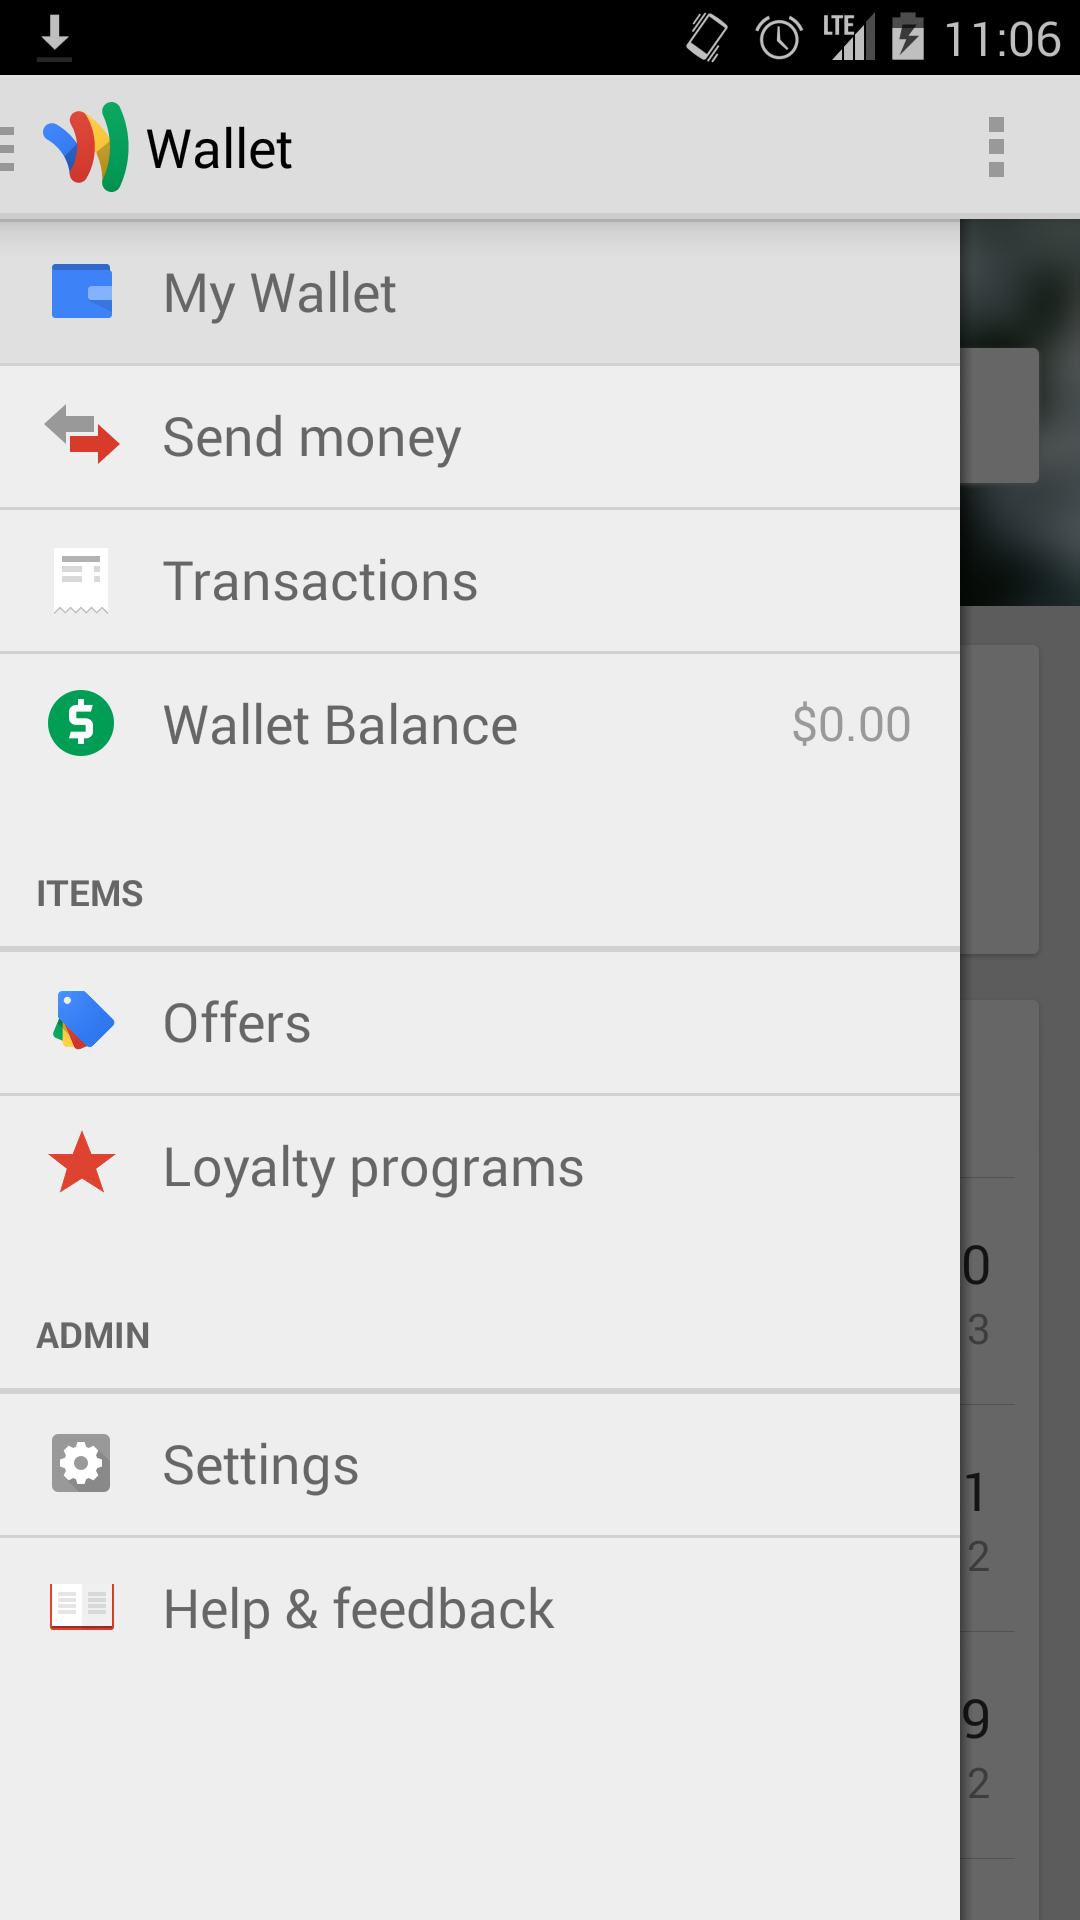 google wallet update incoming loyalty card scanning and notifications in tow droid life. Black Bedroom Furniture Sets. Home Design Ideas